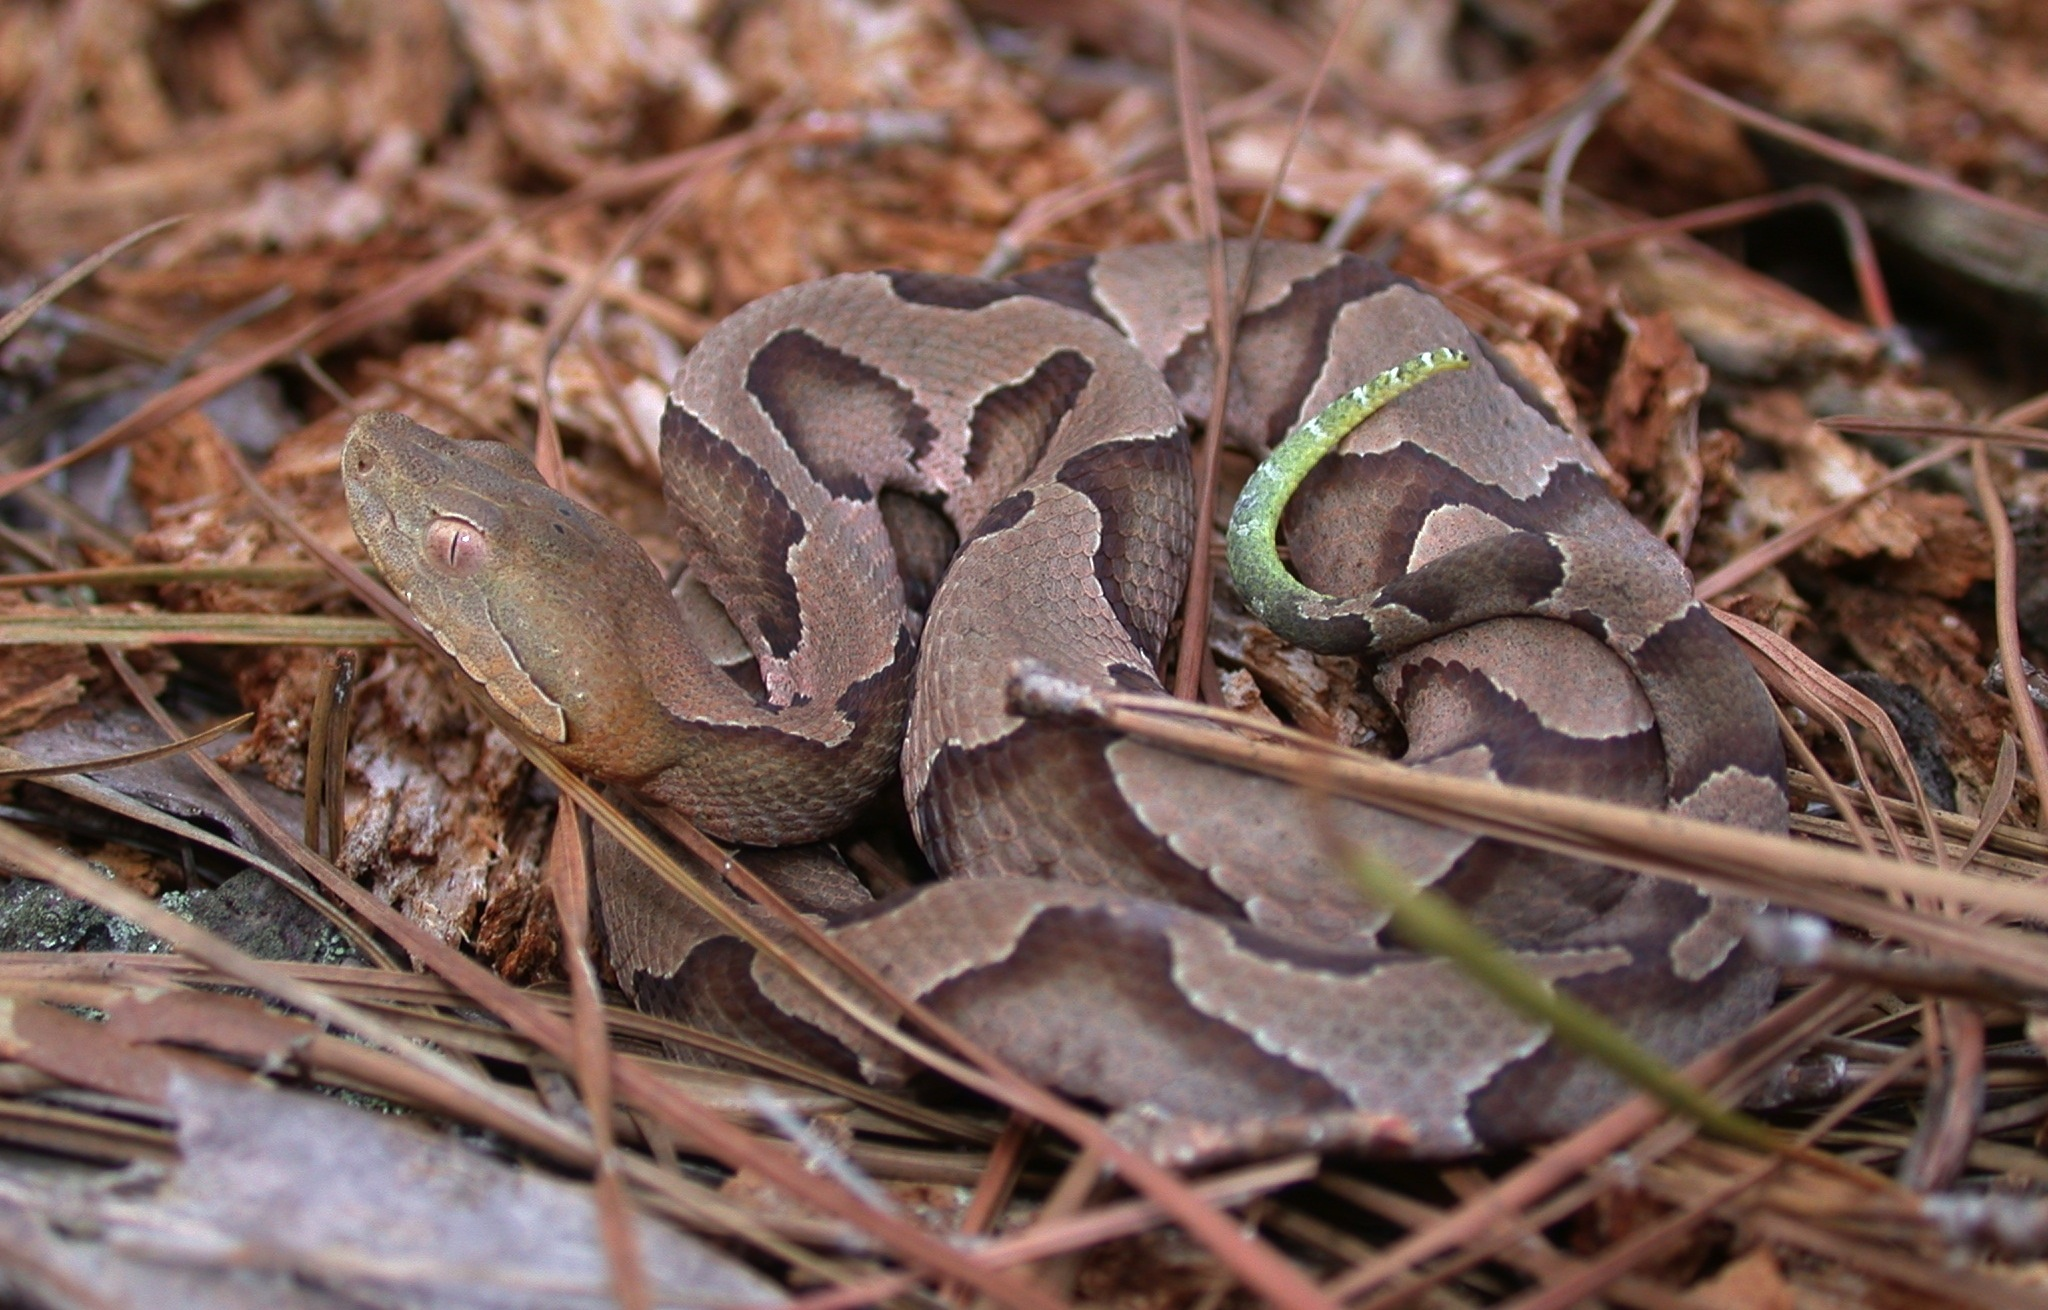 Juvenile copperhead Photo by JD Willson